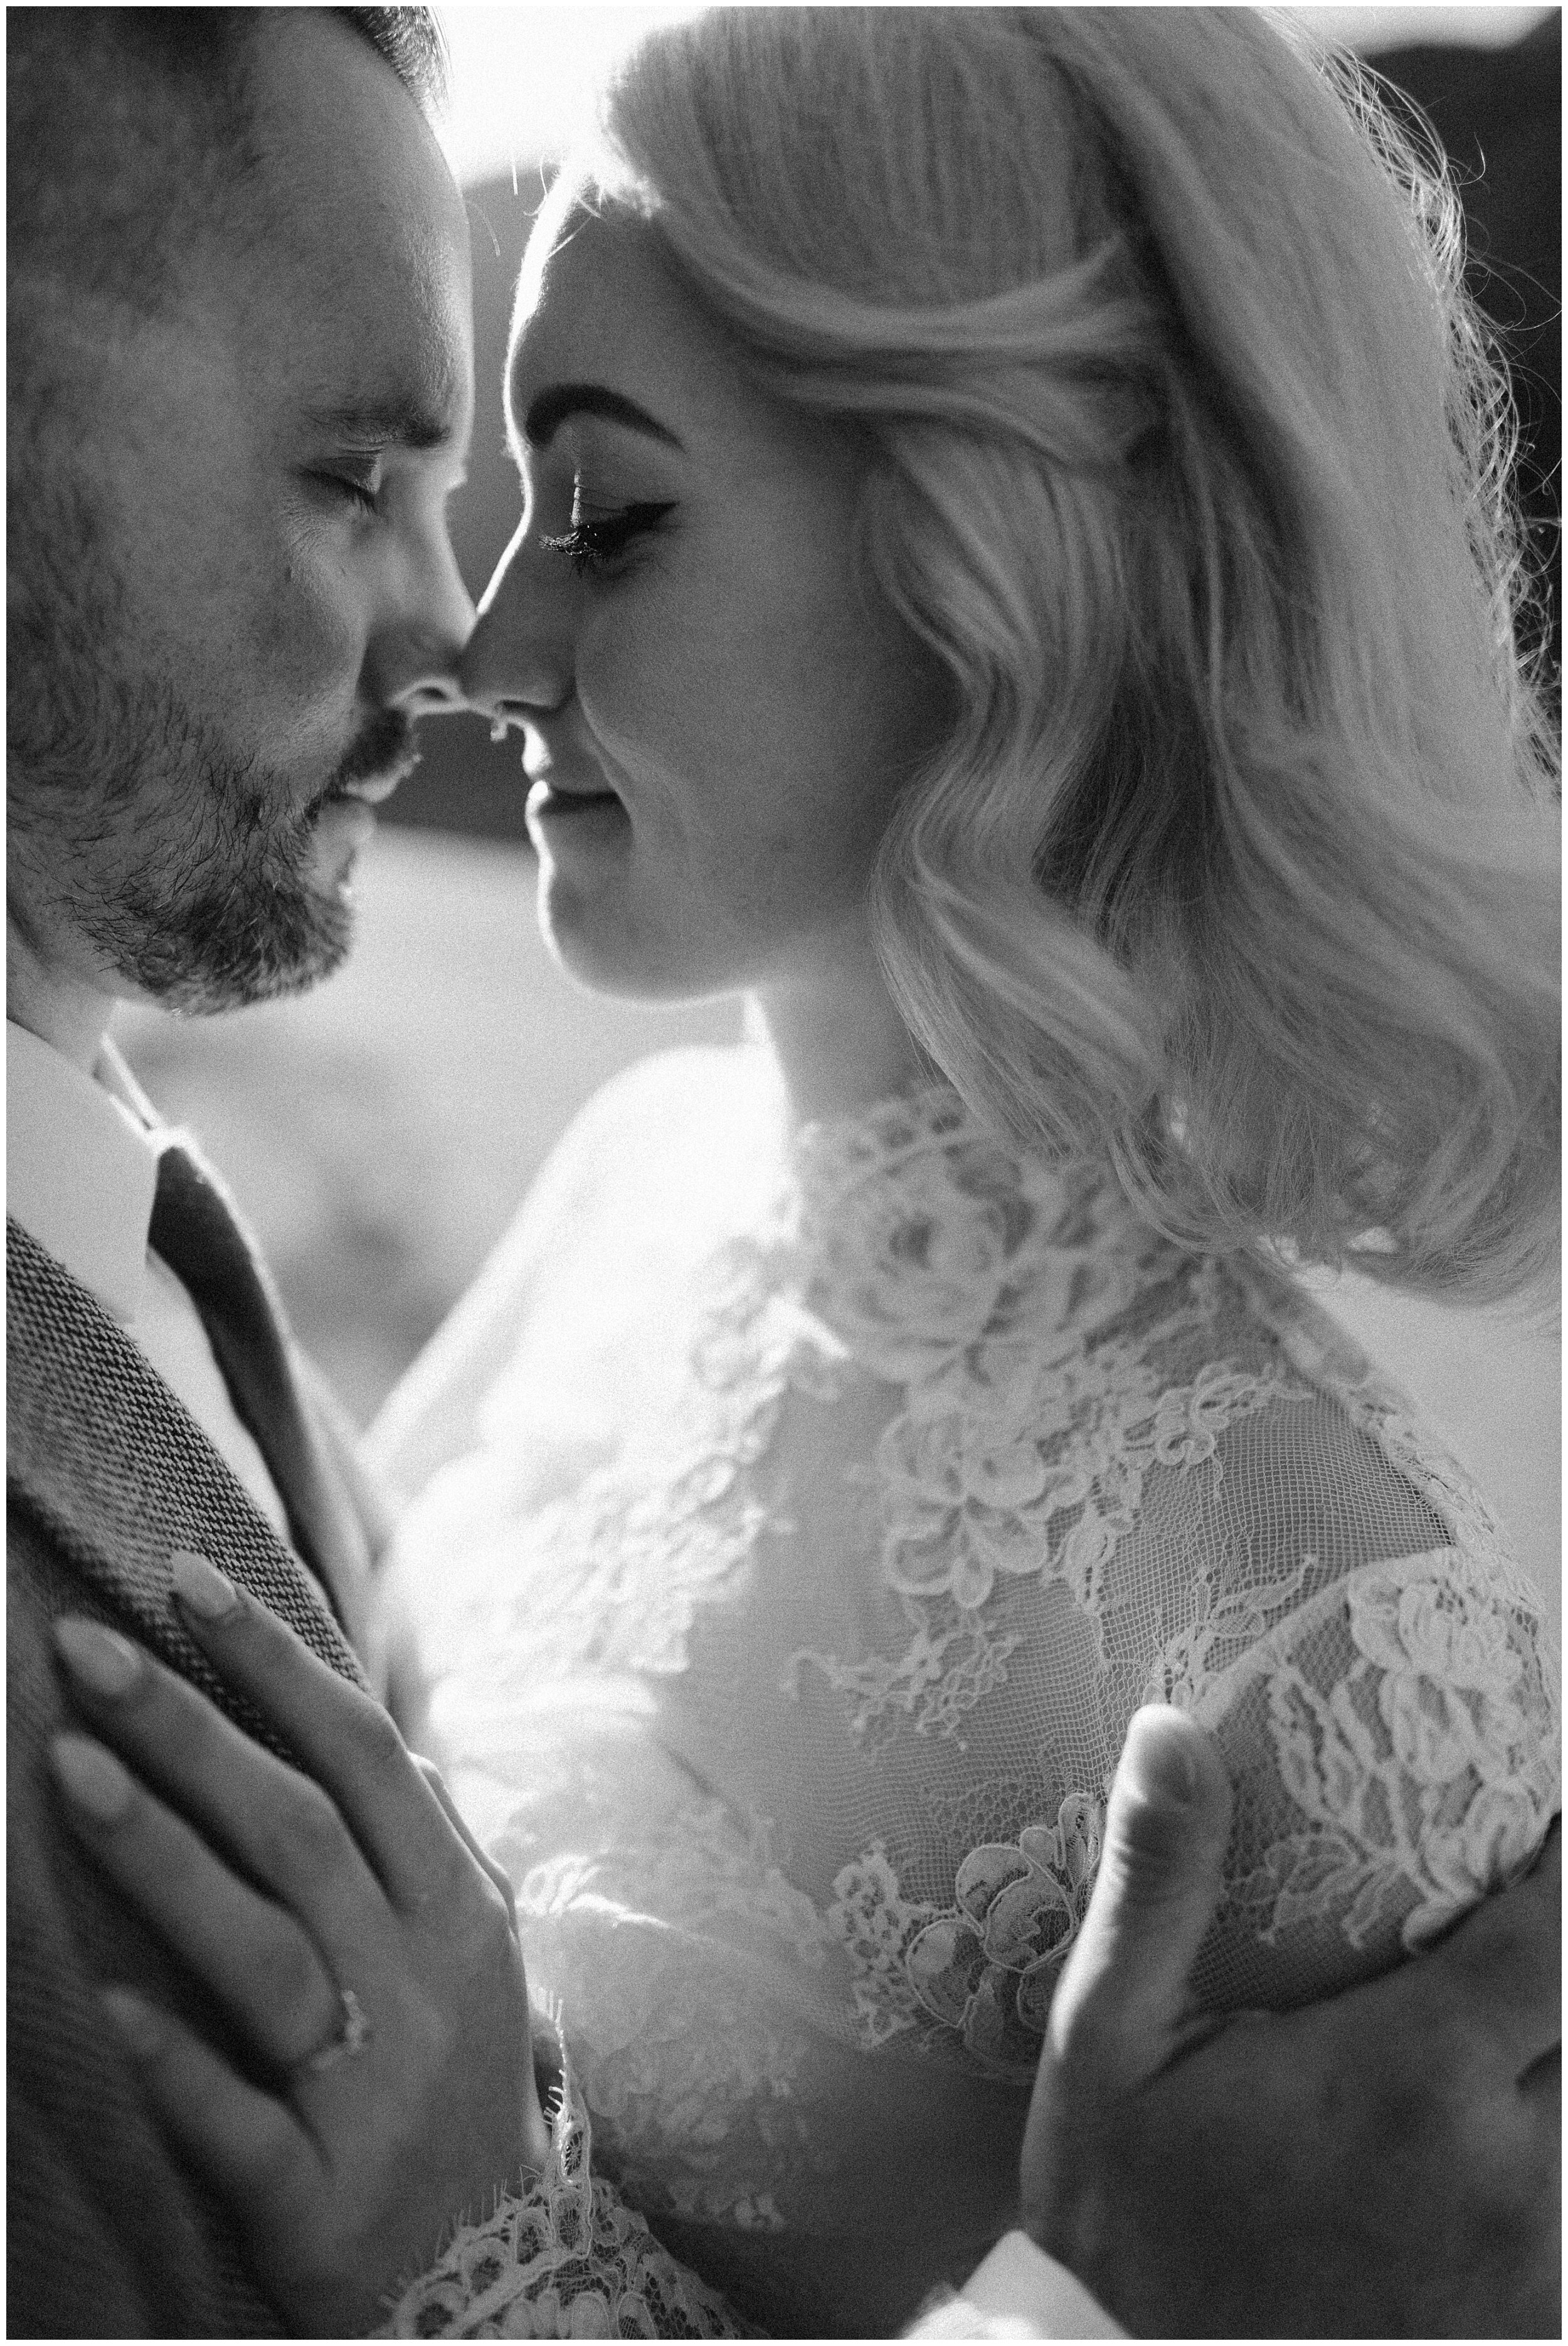 This photo shows a close-up shot of Elaura and Daryn, holding eachother close and looking into each others eyes. The details of Elaura's custom-made wedding dress can be seen up close in these adventure elopement photos shot by Adventure Instead, a destination elopement photographer.